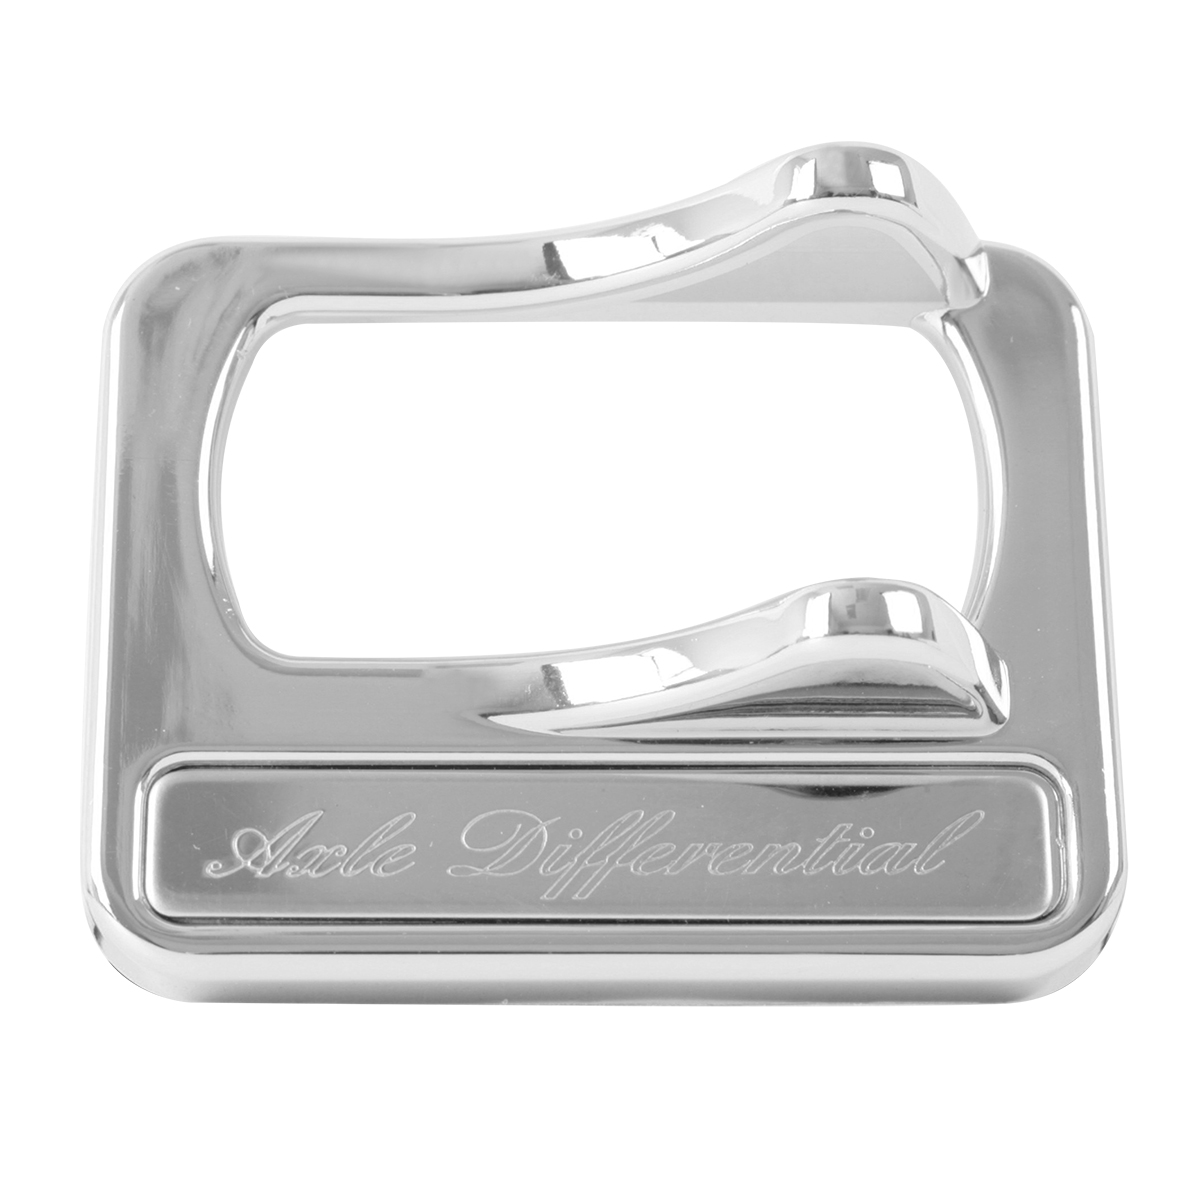 96130 Rocker Switch Cover w/ Stainless Steel Script Plate for Peterbilt 2005 & Later